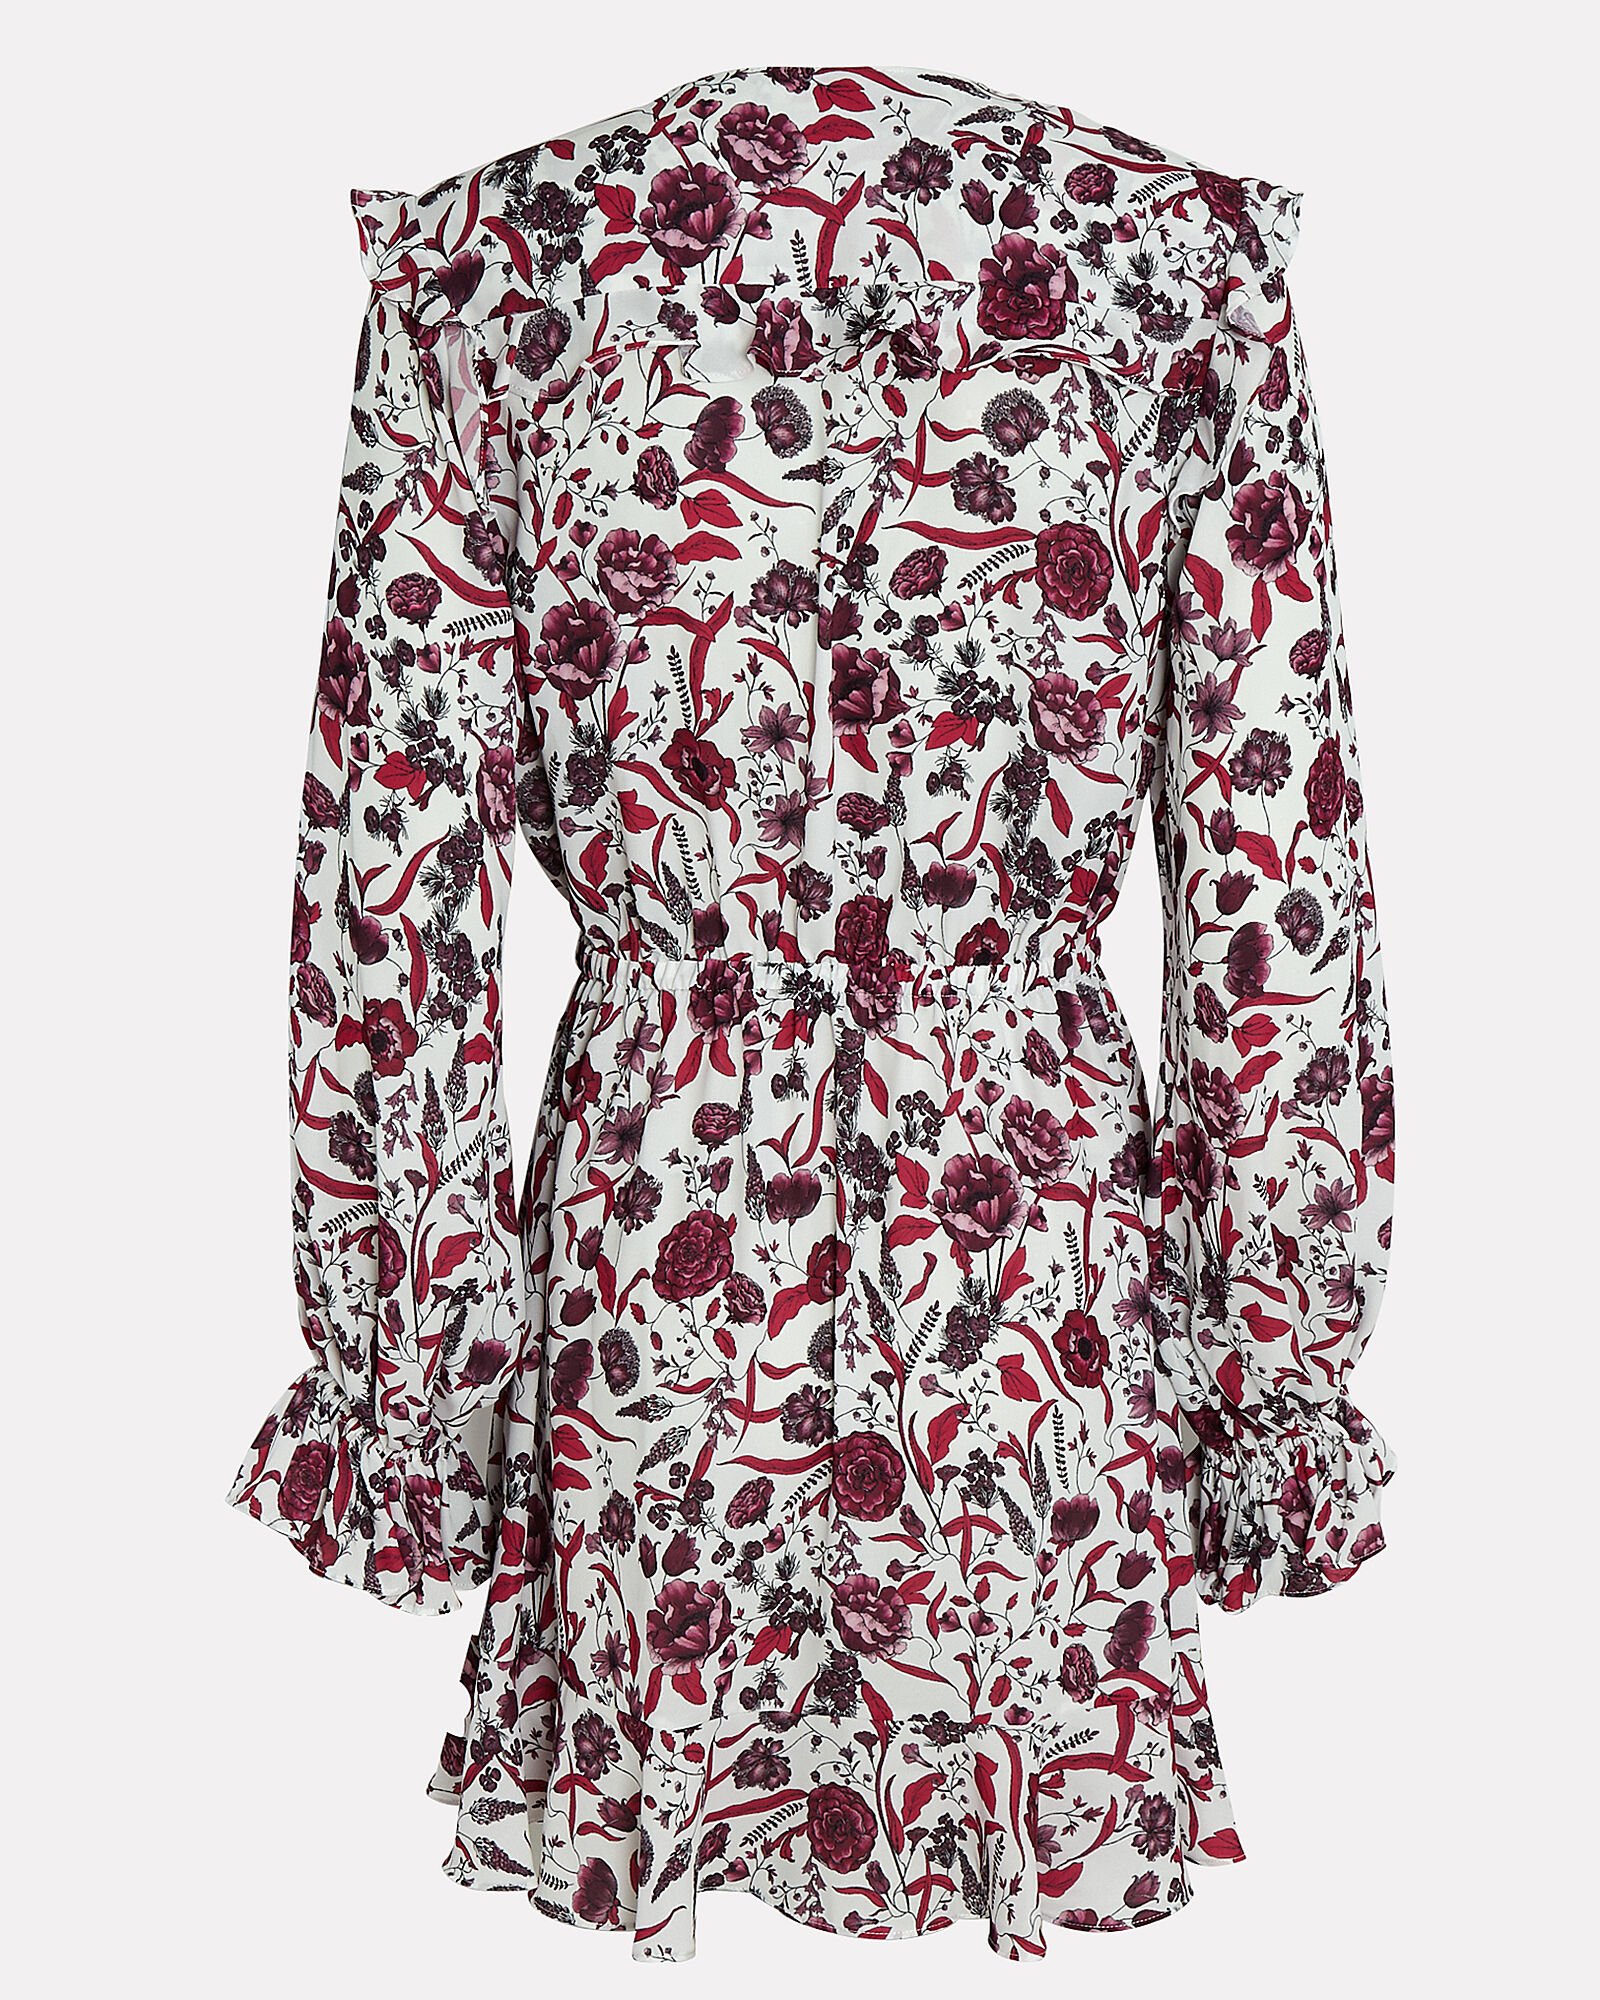 Kosma Floral Mini Dress, WHITE/RED FLORAL, hi-res